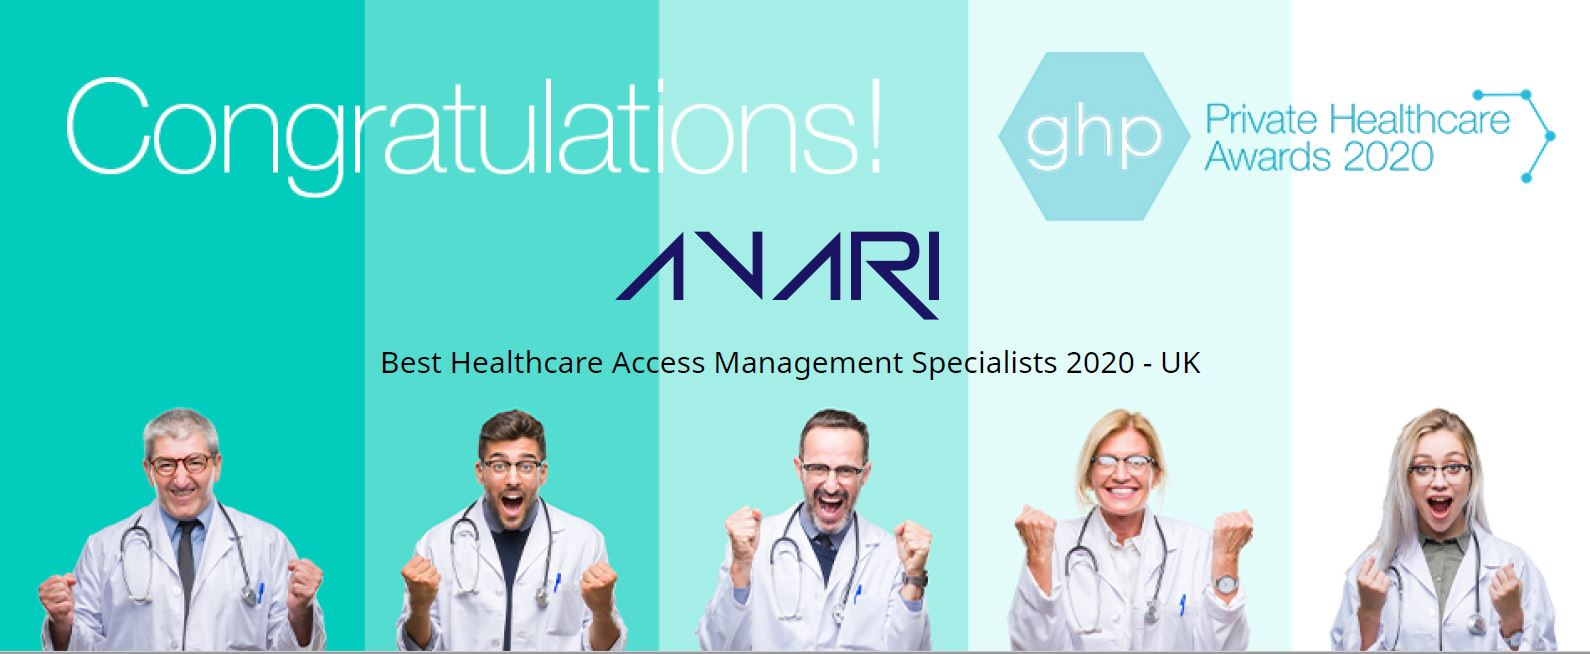 Healthcare Award 2020.png